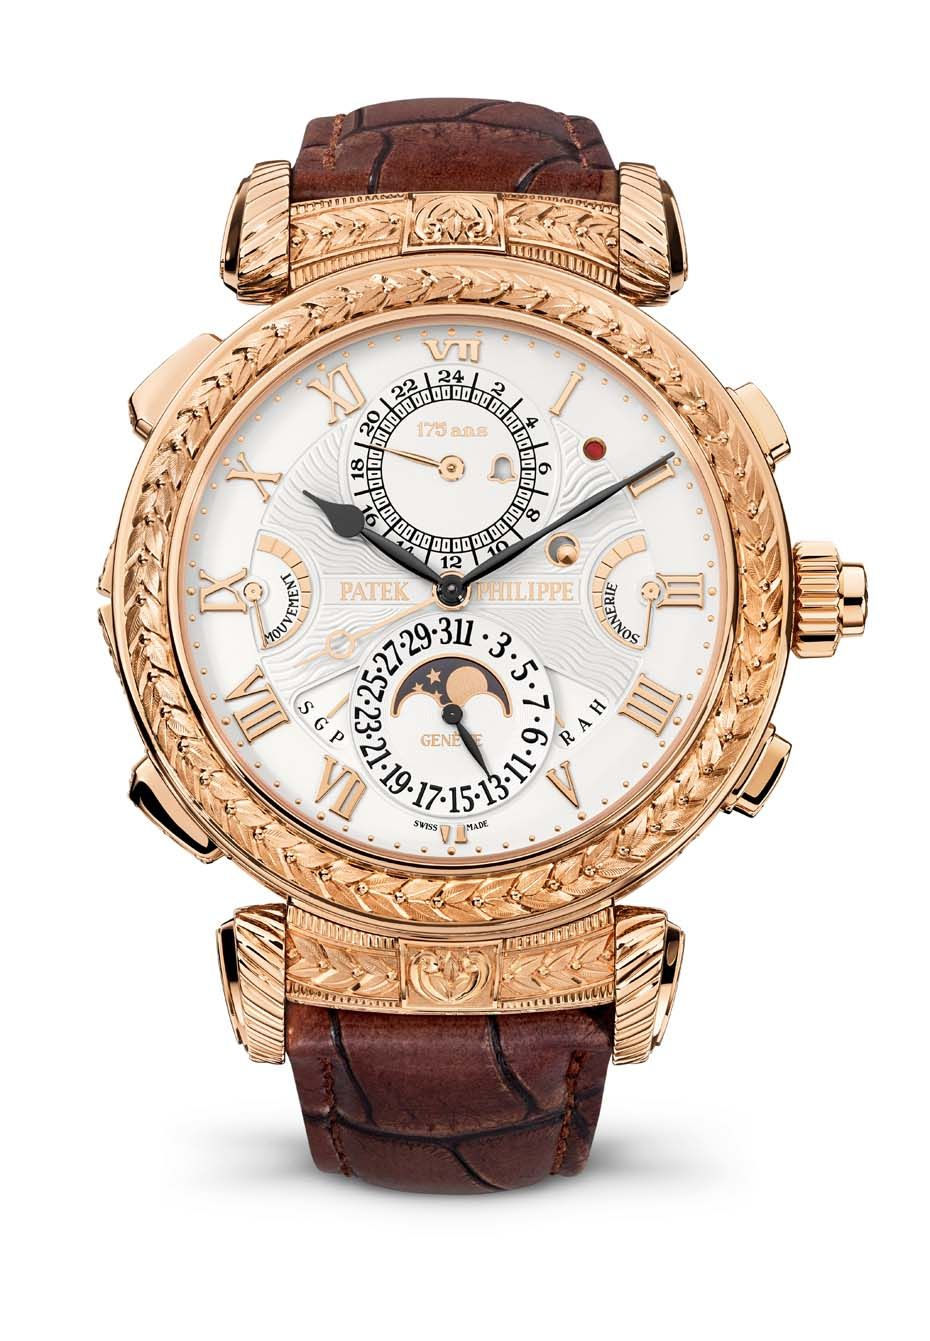 The 175th anniversary surprise from @patekphilippe was the most complicated wristwatch it has ever made: with 20 complications and a price tag of SFr 2.5 million. #swisswatches #patekphilippe